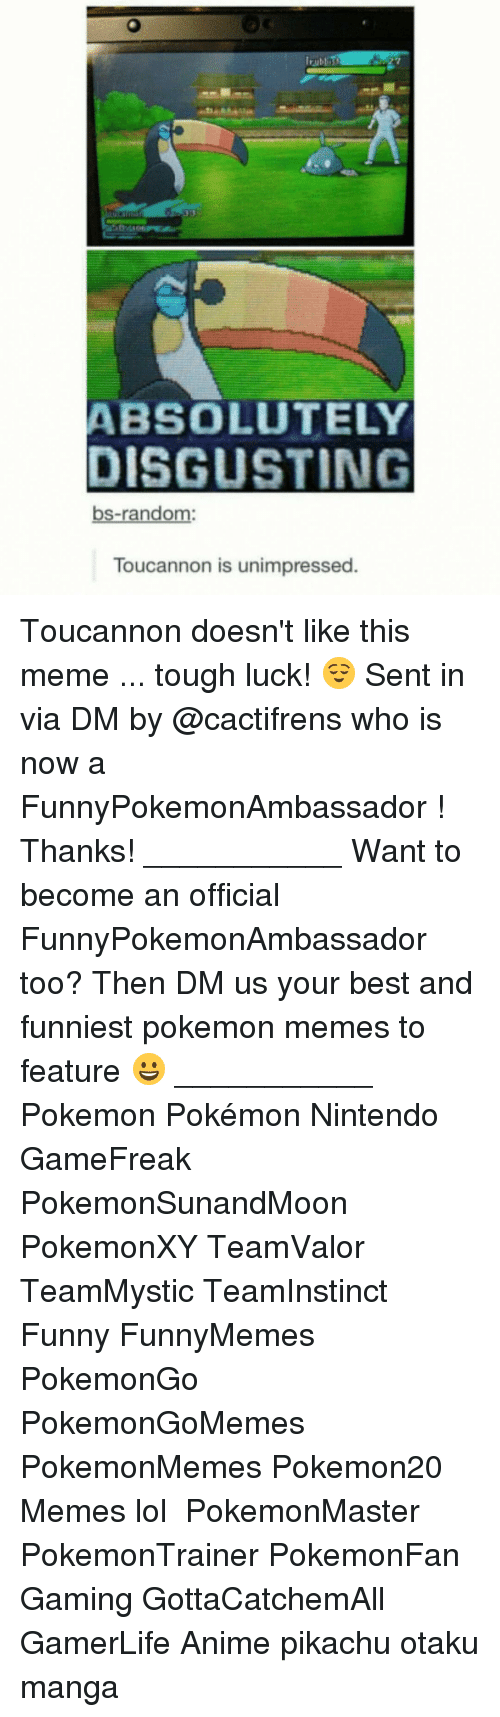 Memes, Pikachu, and Pokemon: ABSOLUTELY  DISGUSTING  bs-random:  Toucannon is unimpressed. Toucannon doesn't like this meme ... tough luck! 😌 Sent in via DM by @cactifrens who is now a FunnyPokemonAmbassador ! Thanks! ___________ Want to become an official FunnyPokemonAmbassador too? Then DM us your best and funniest pokemon memes to feature 😀 ___________ Pokemon Pokémon Nintendo GameFreak PokemonSunandMoon PokemonXY TeamValor TeamMystic TeamInstinct Funny FunnyMemes PokemonGo PokemonGoMemes PokemonMemes Pokemon20 Memes lol ポケットモンスター PokemonMaster PokemonTrainer PokemonFan Gaming GottaCatchemAll GamerLife Anime pikachu otaku manga